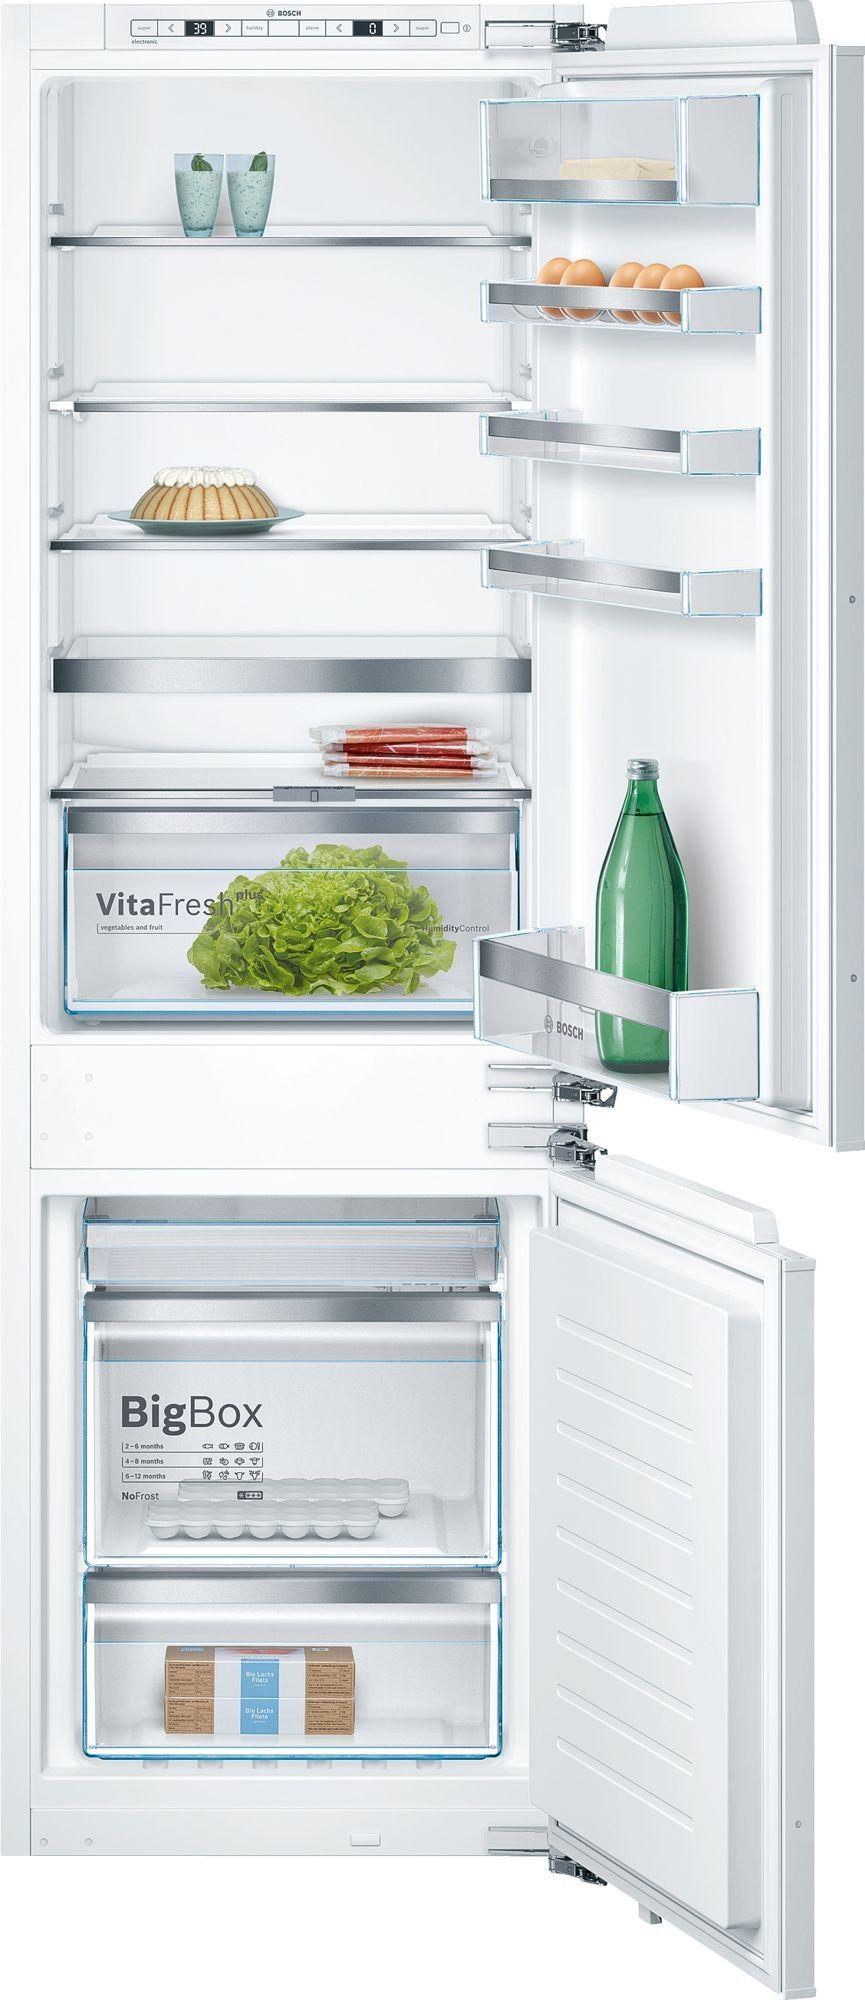 Bosch B09ib81nsp 24 Inch Built In Panel Ready Refrigerator With Wifi Home Connect Bigbox Freezer Drawer Supercooling Superfreezing Vitafresh Pro Drawer Va Bottom Freezer Bottom Freezer Refrigerator Built In Refrigerator